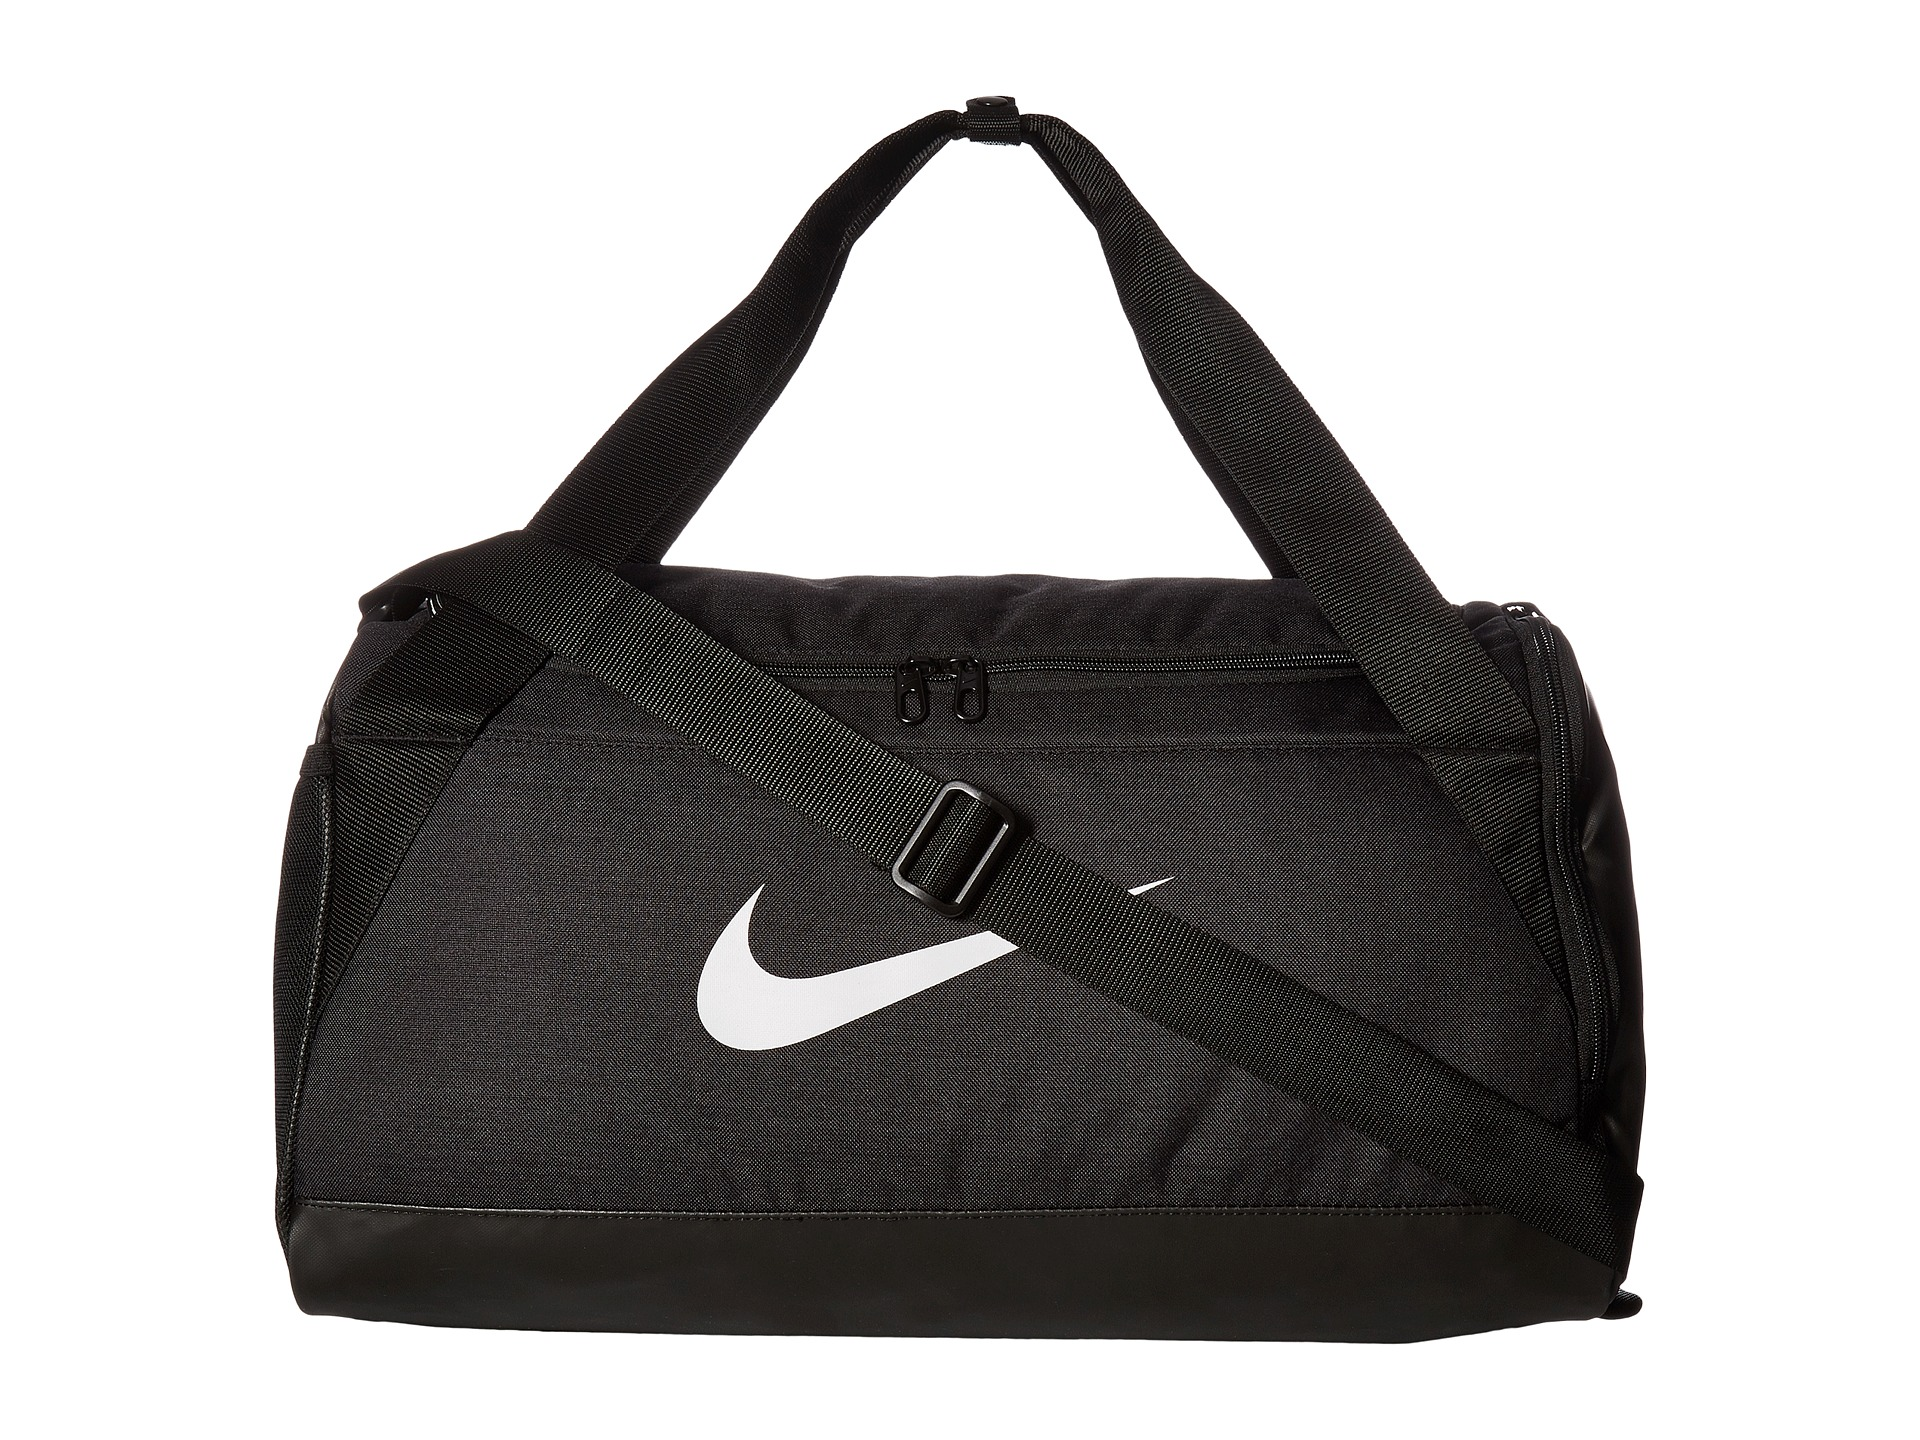 Nike Brasilia Small Duffel Bag at Zappos.com